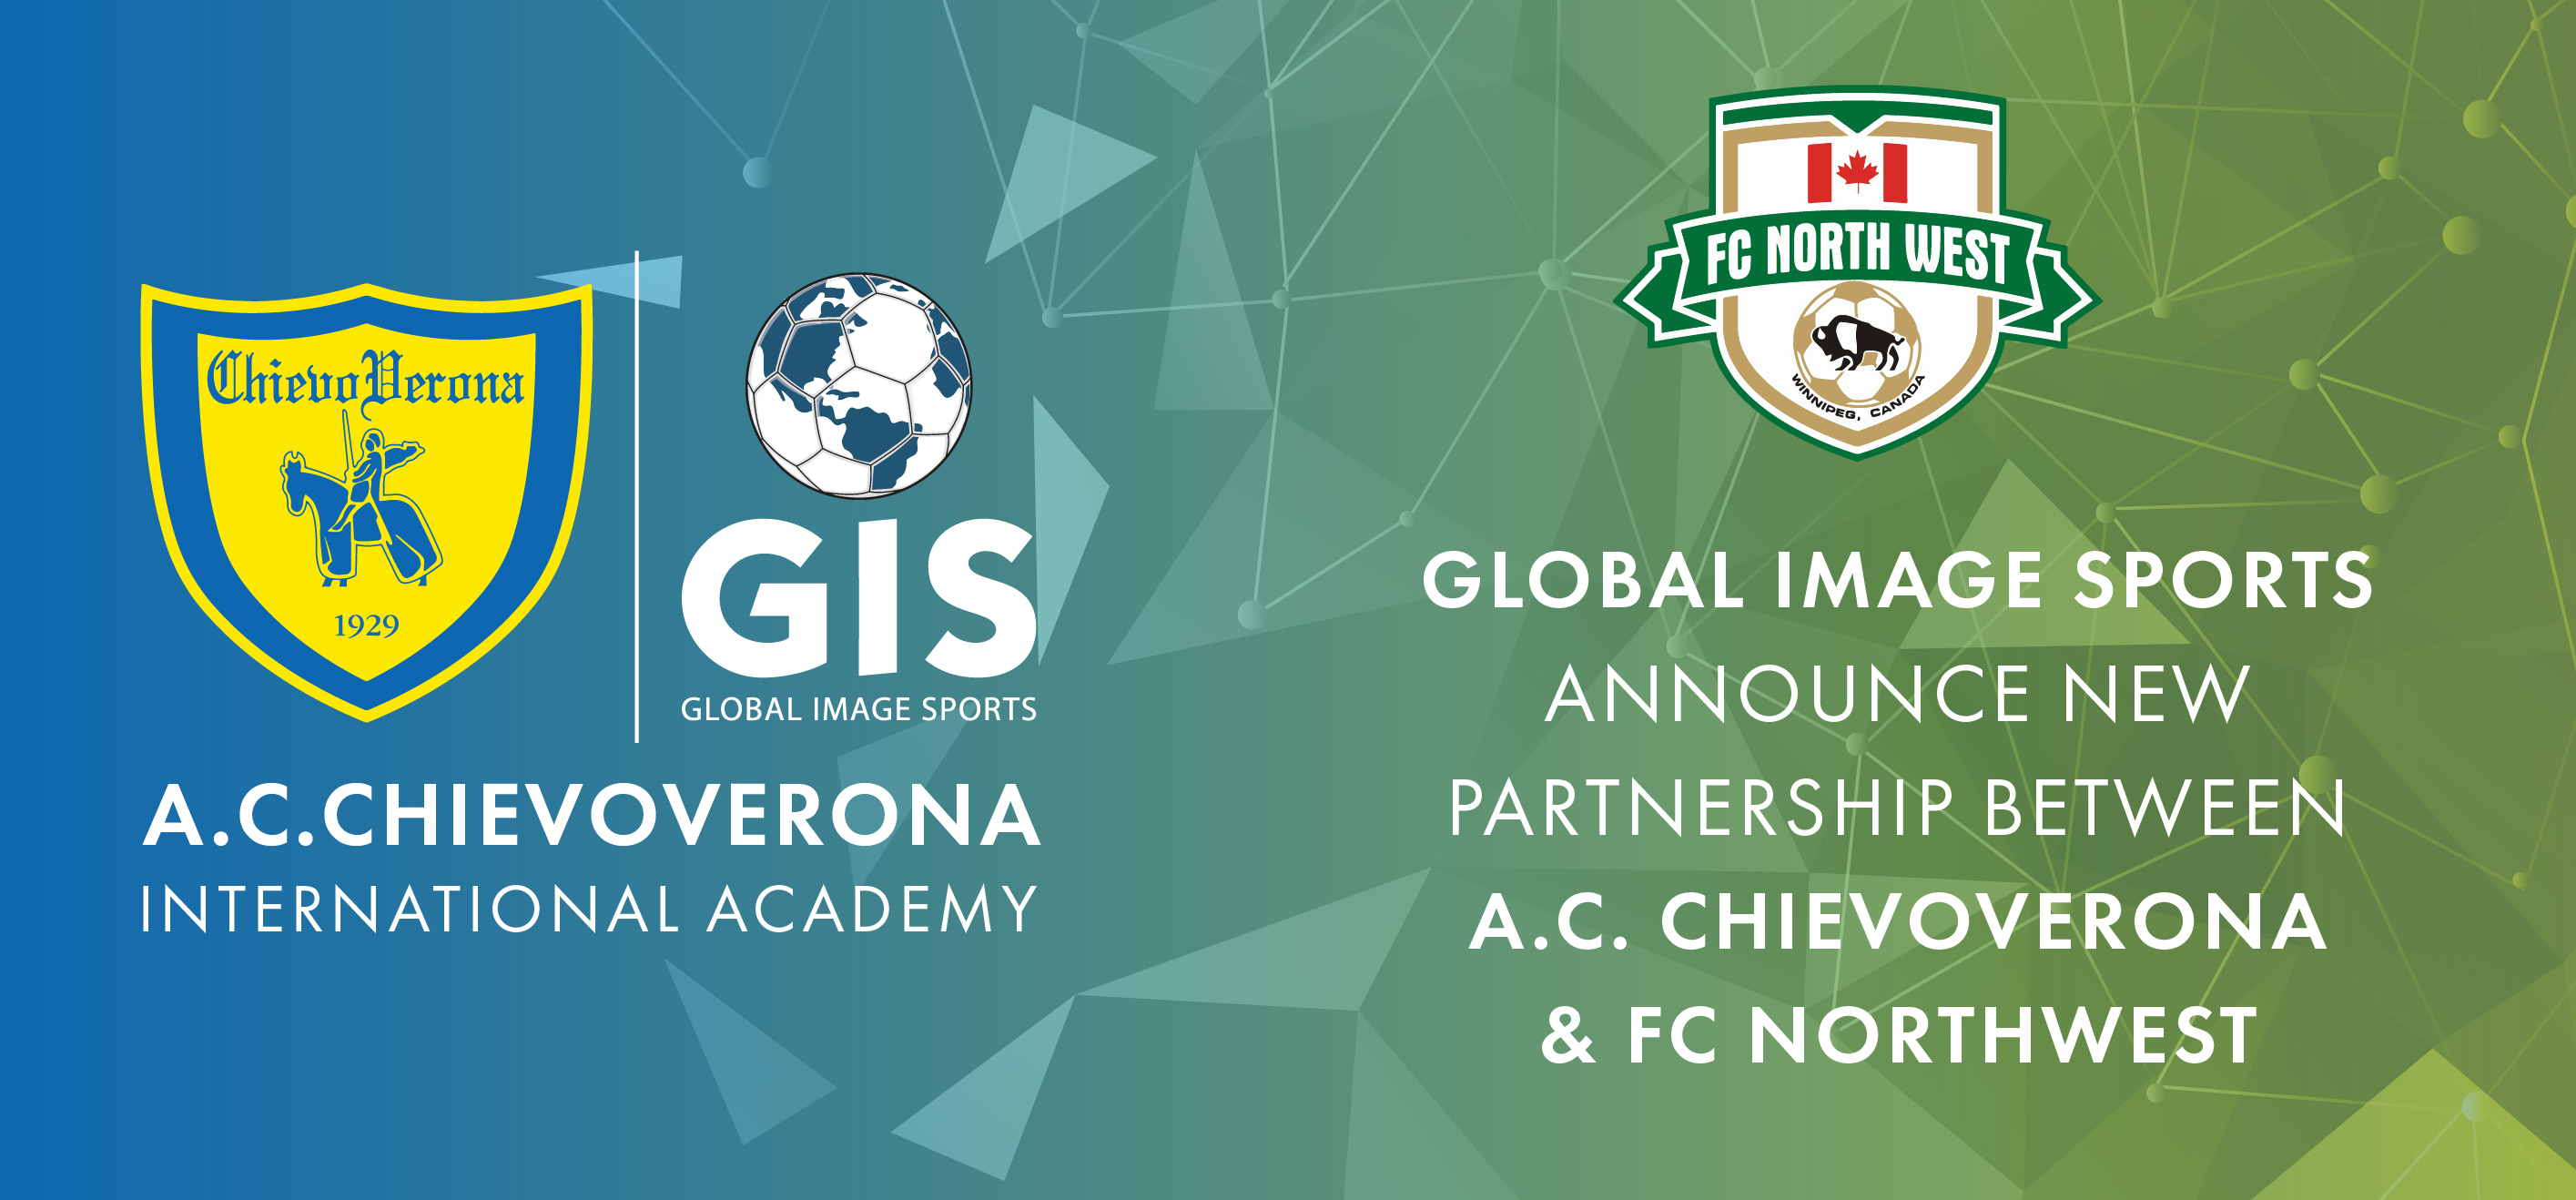 A.C. CHIEVOVERONA, GLOBAL IMAGE SPORTS INC. & FC NORTHWEST ANNOUNCE NEW PARTNERSHIP